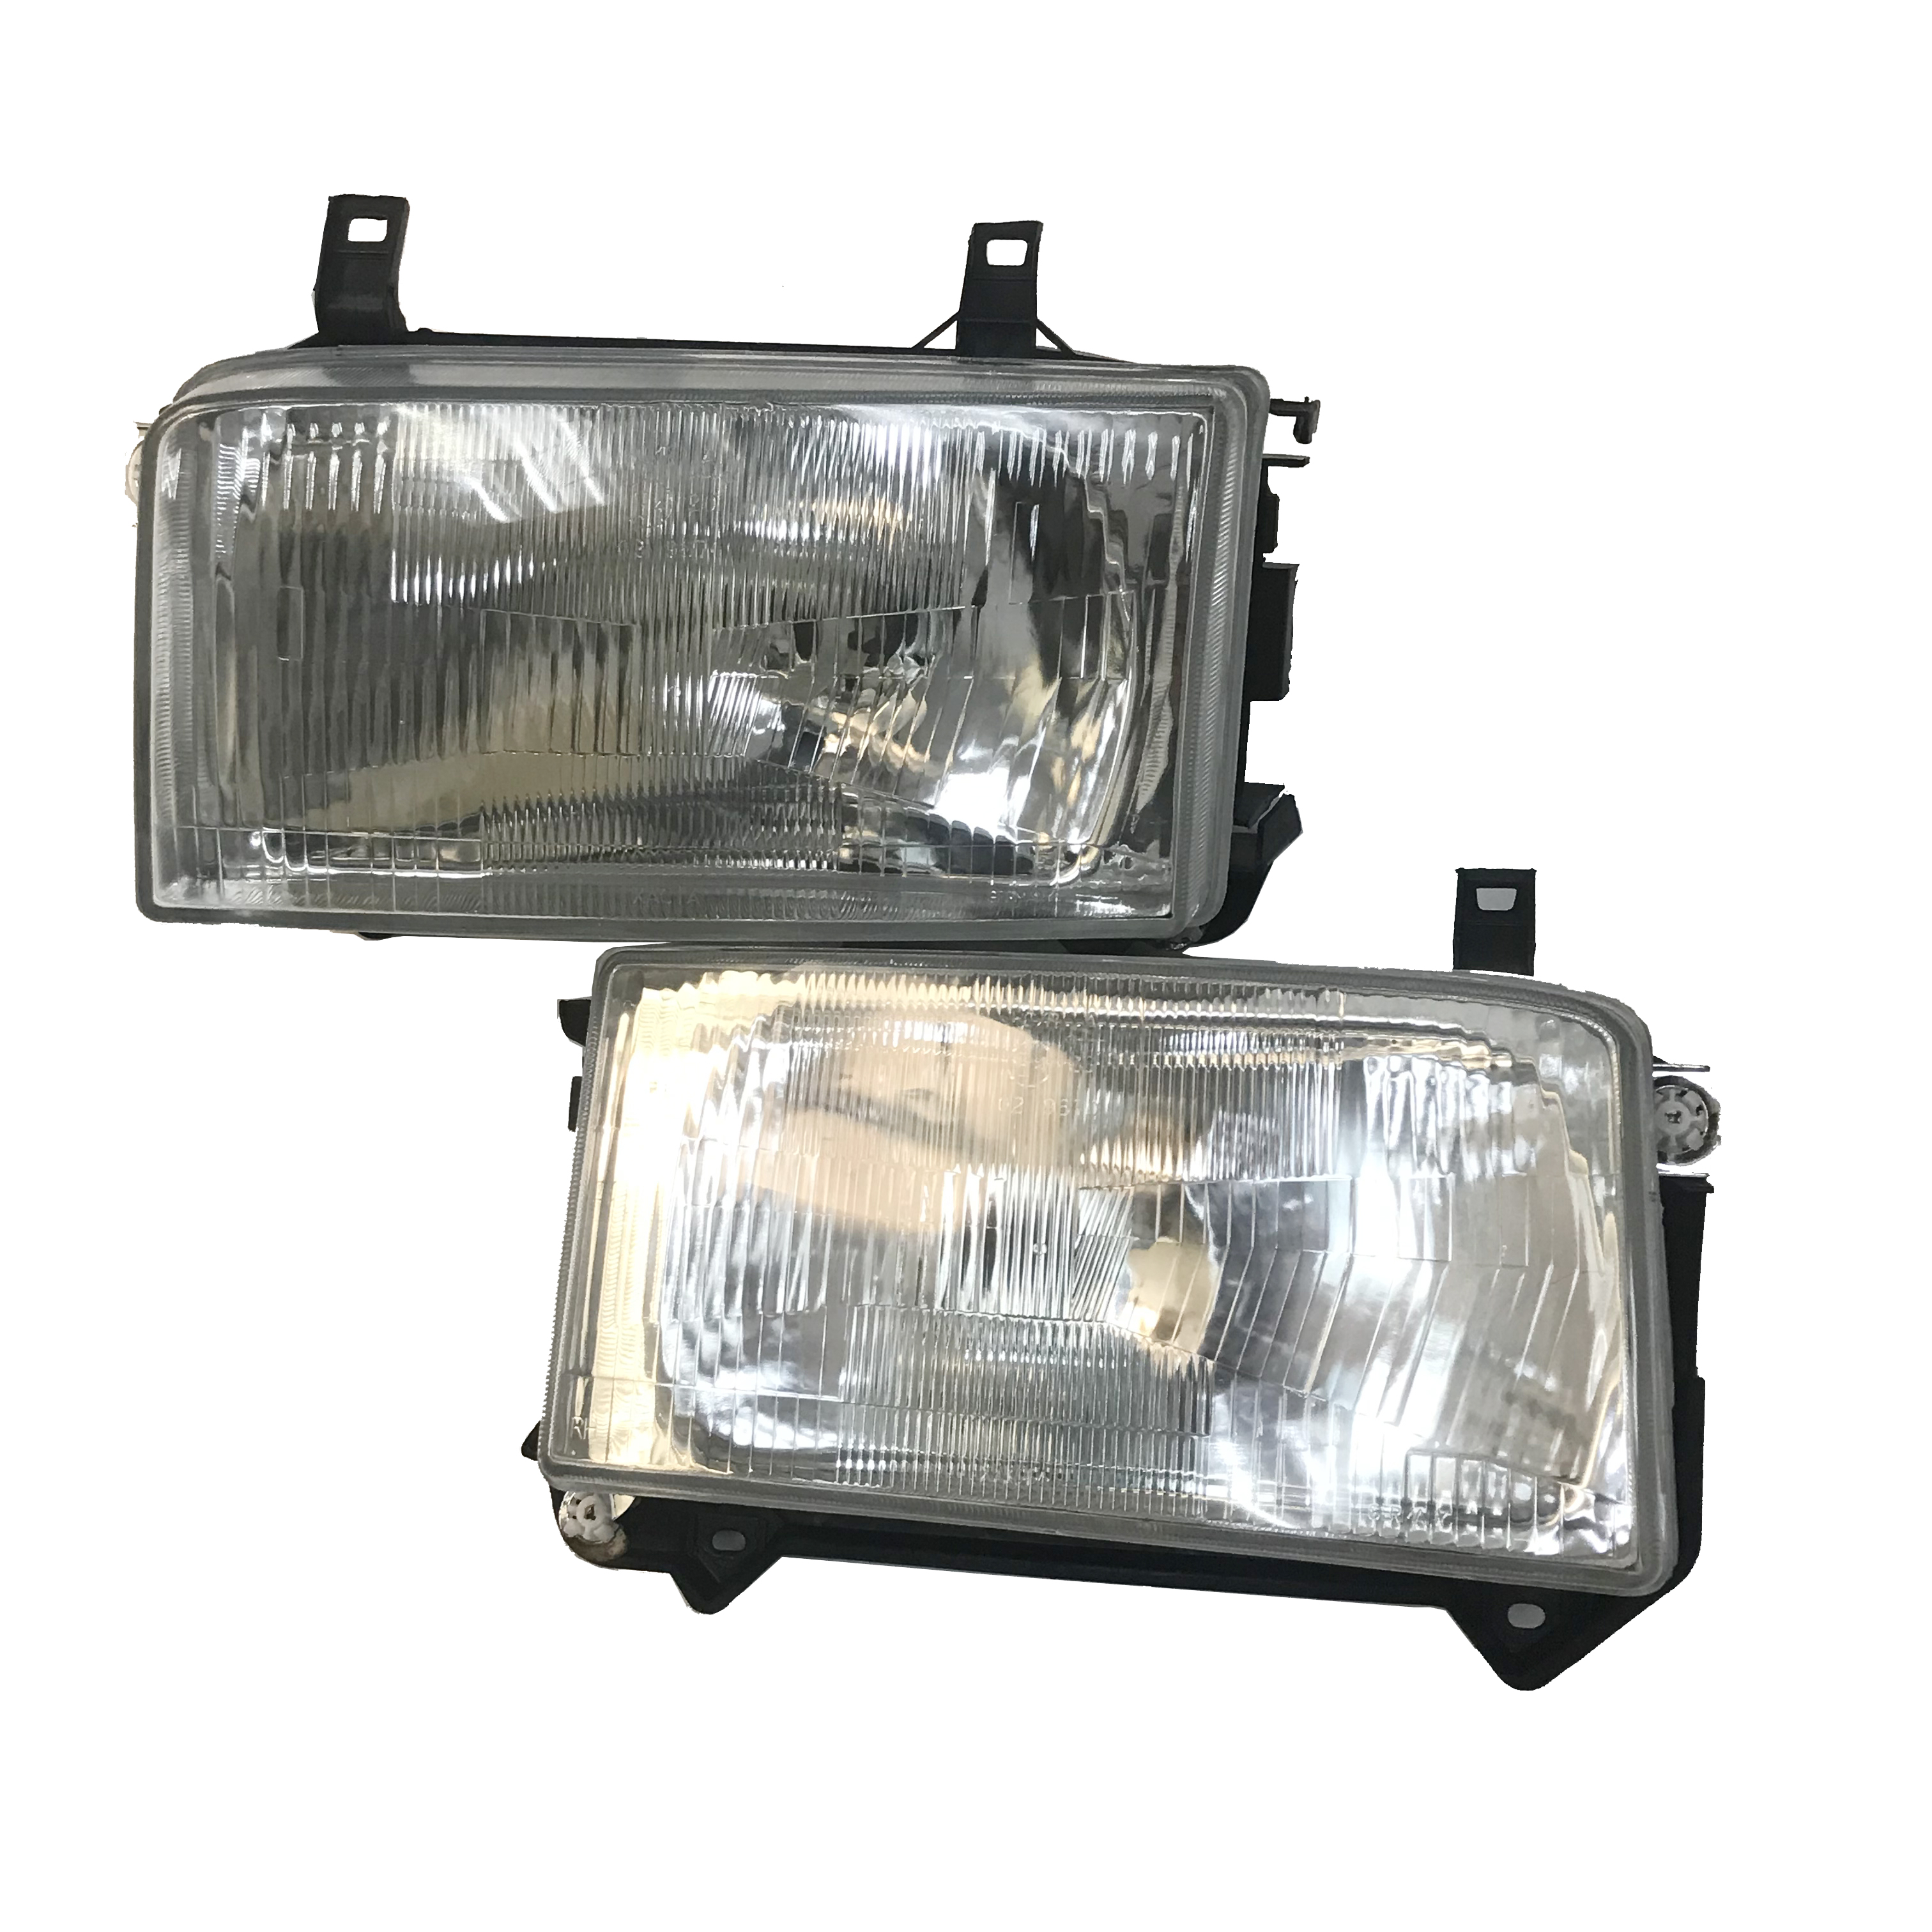 RH&LH Headlight for Volkswagen Transporter <font><b>VW</b></font> <font><b>T4</b></font> Eurovan Caravelle Multivan <font><b>T4</b></font> Head <font><b>light</b></font> lamp image